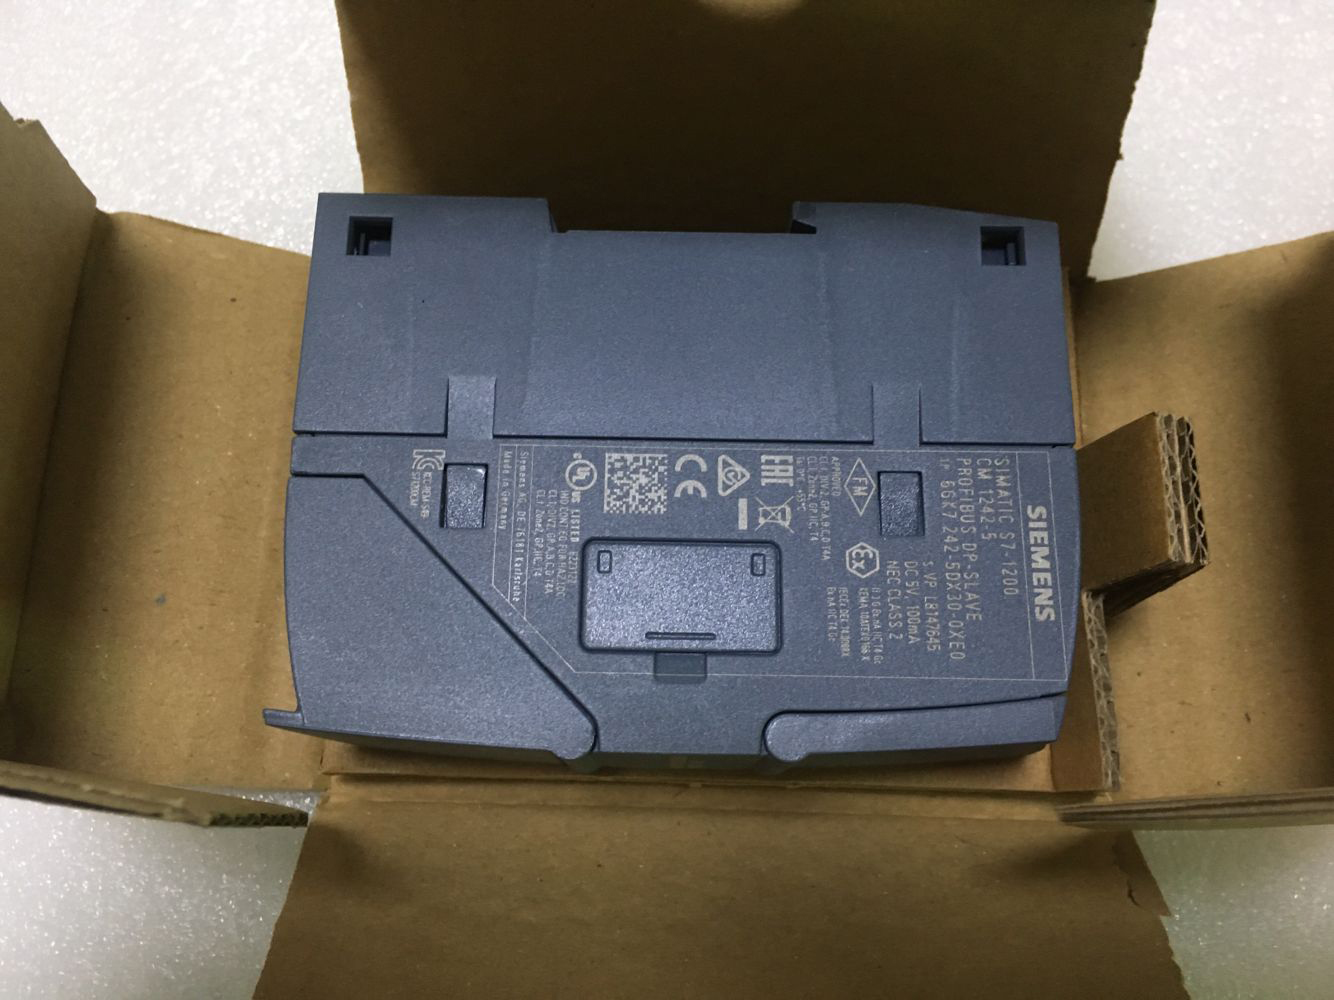 Siemens S7-1200 CM1242-5 communication module 6GK7 242 6GK7242-5DX30-0XE0